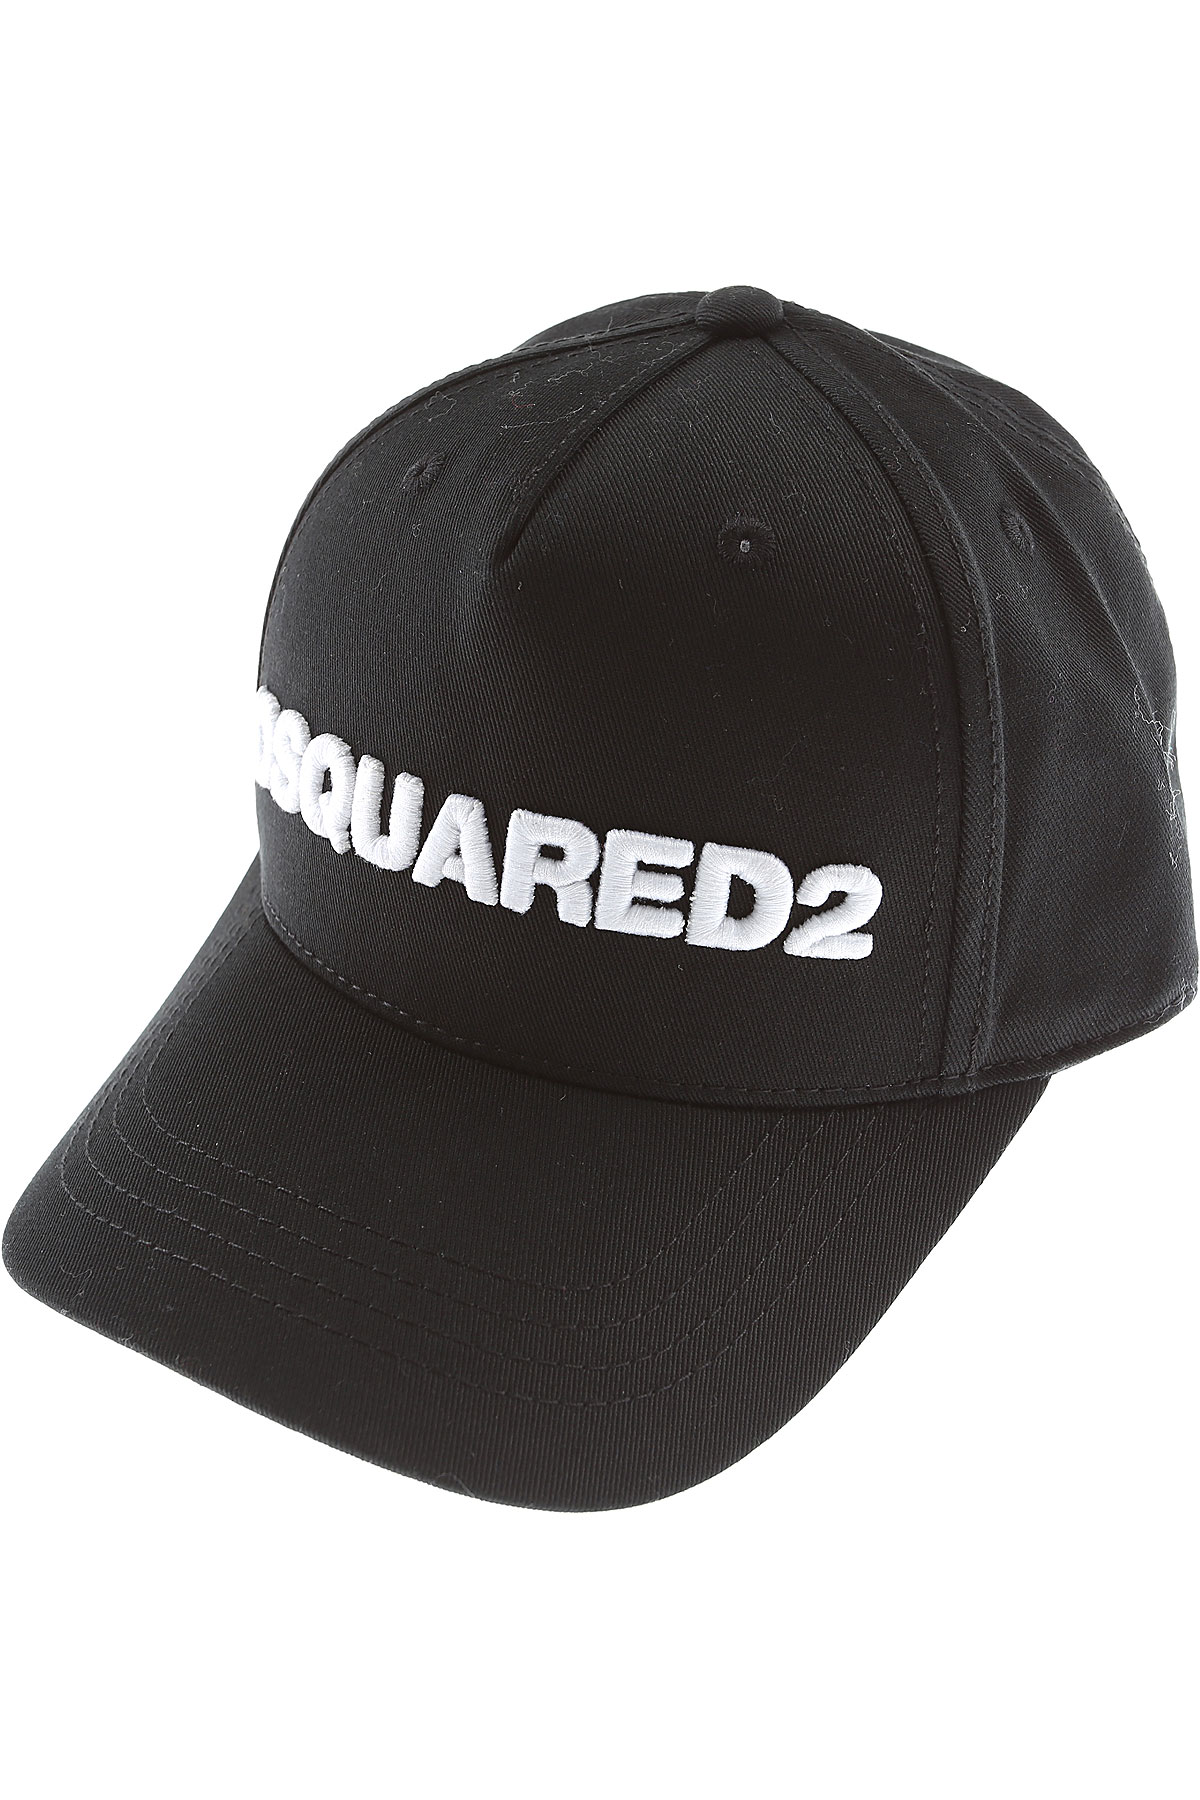 Image of Dsquared2 Kids Hats for Boys, Black, polyester, 2017, I II III